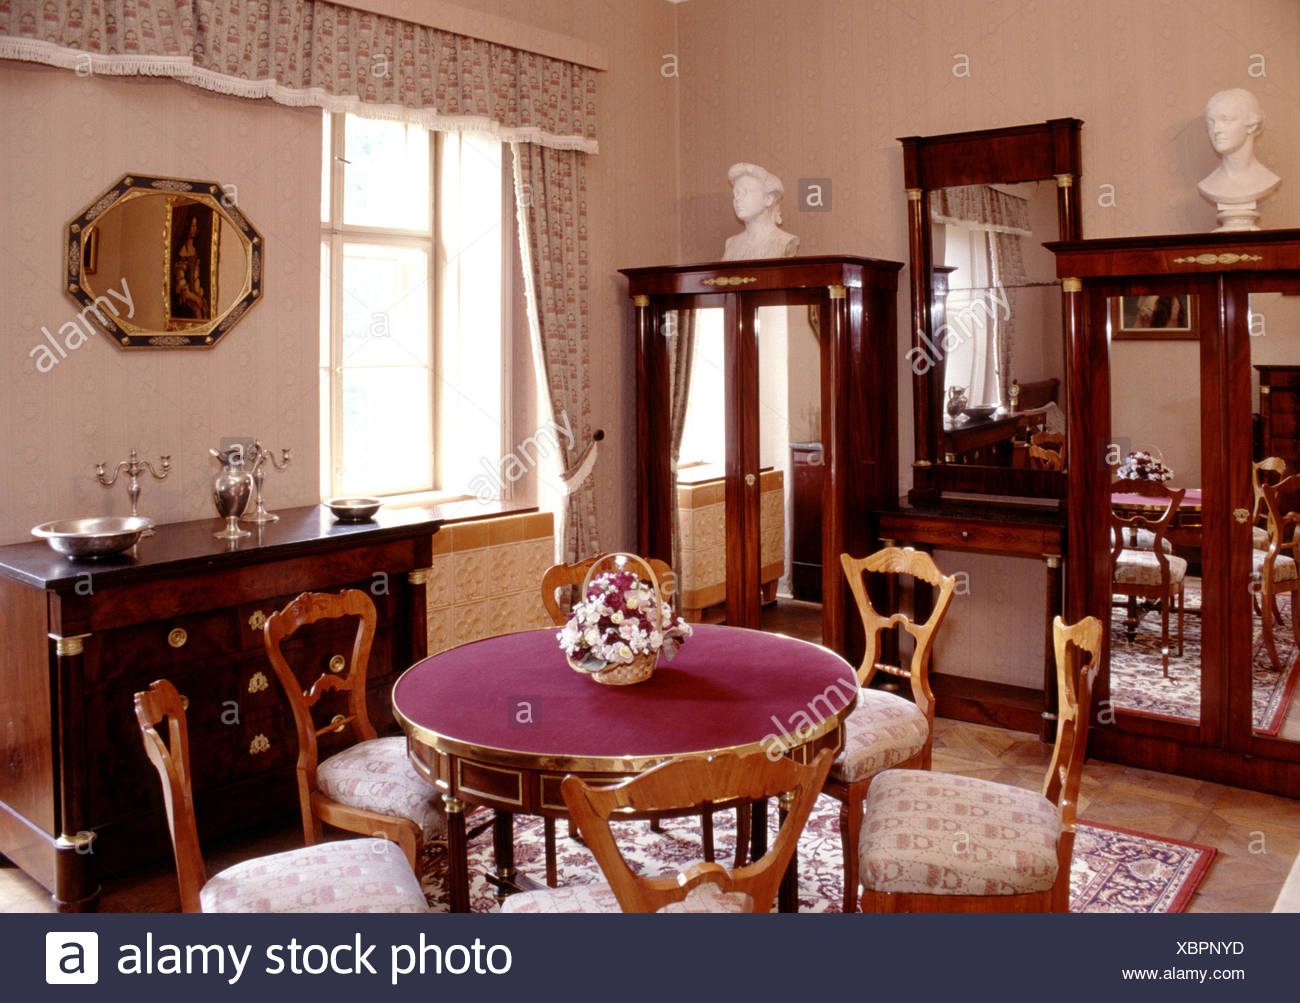 Victorian Dining Room Stock Photo: 282627281   Alamy